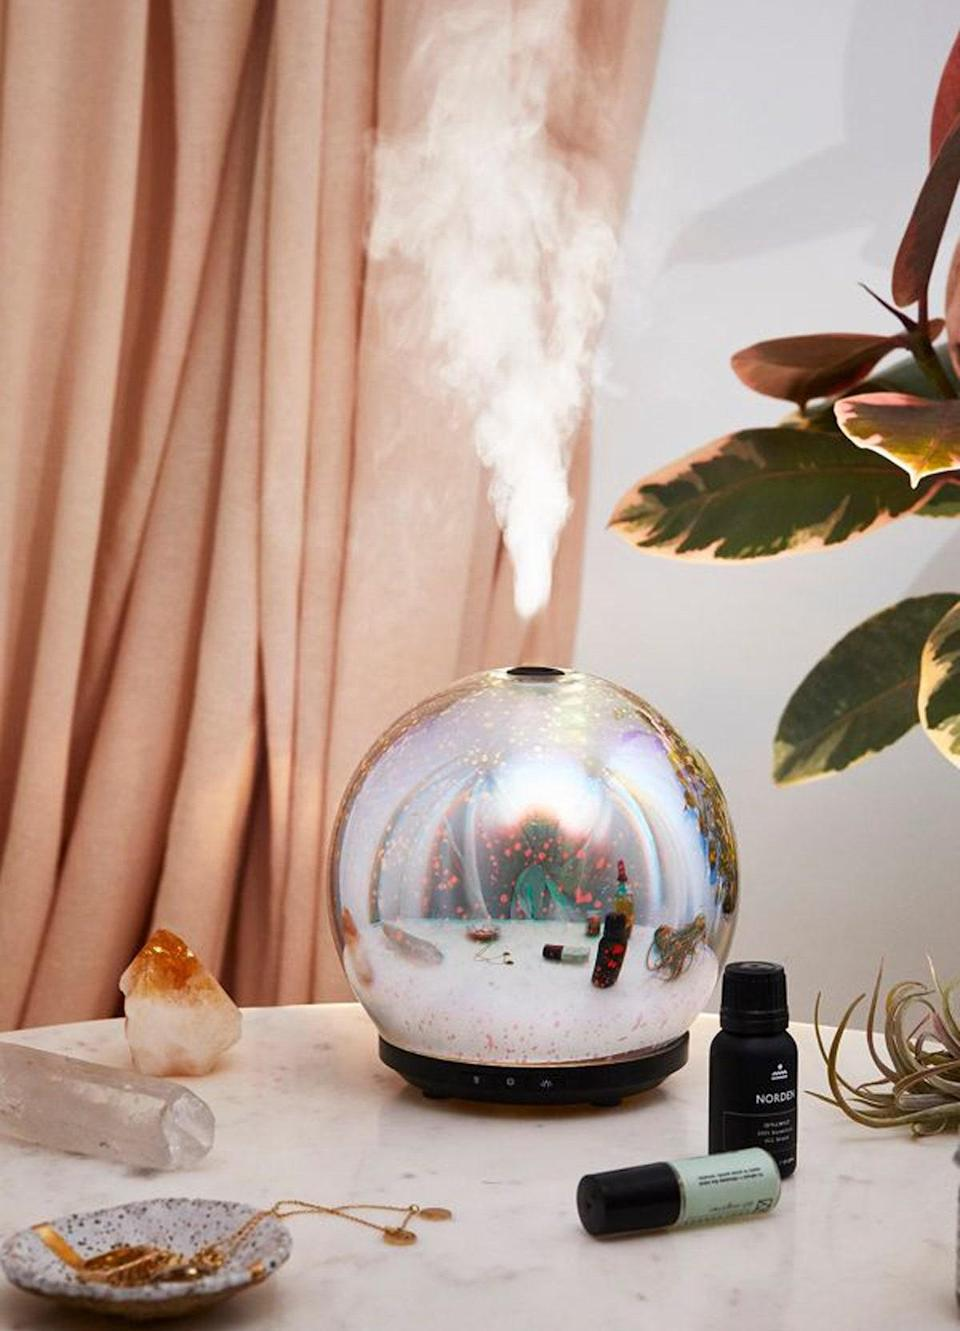 """For a mystical vibe, this holographic orb has a range of LED light settings to compliment the aromatic puffs. $65, Urban Outfitters. <a href=""""https://www.urbanoutfitters.com/shop/3d-led-gala-essential-oil-diffuser?category=PRODUCTTRAY&color=095"""" rel=""""nofollow noopener"""" target=""""_blank"""" data-ylk=""""slk:Get it now!"""" class=""""link rapid-noclick-resp"""">Get it now!</a>"""